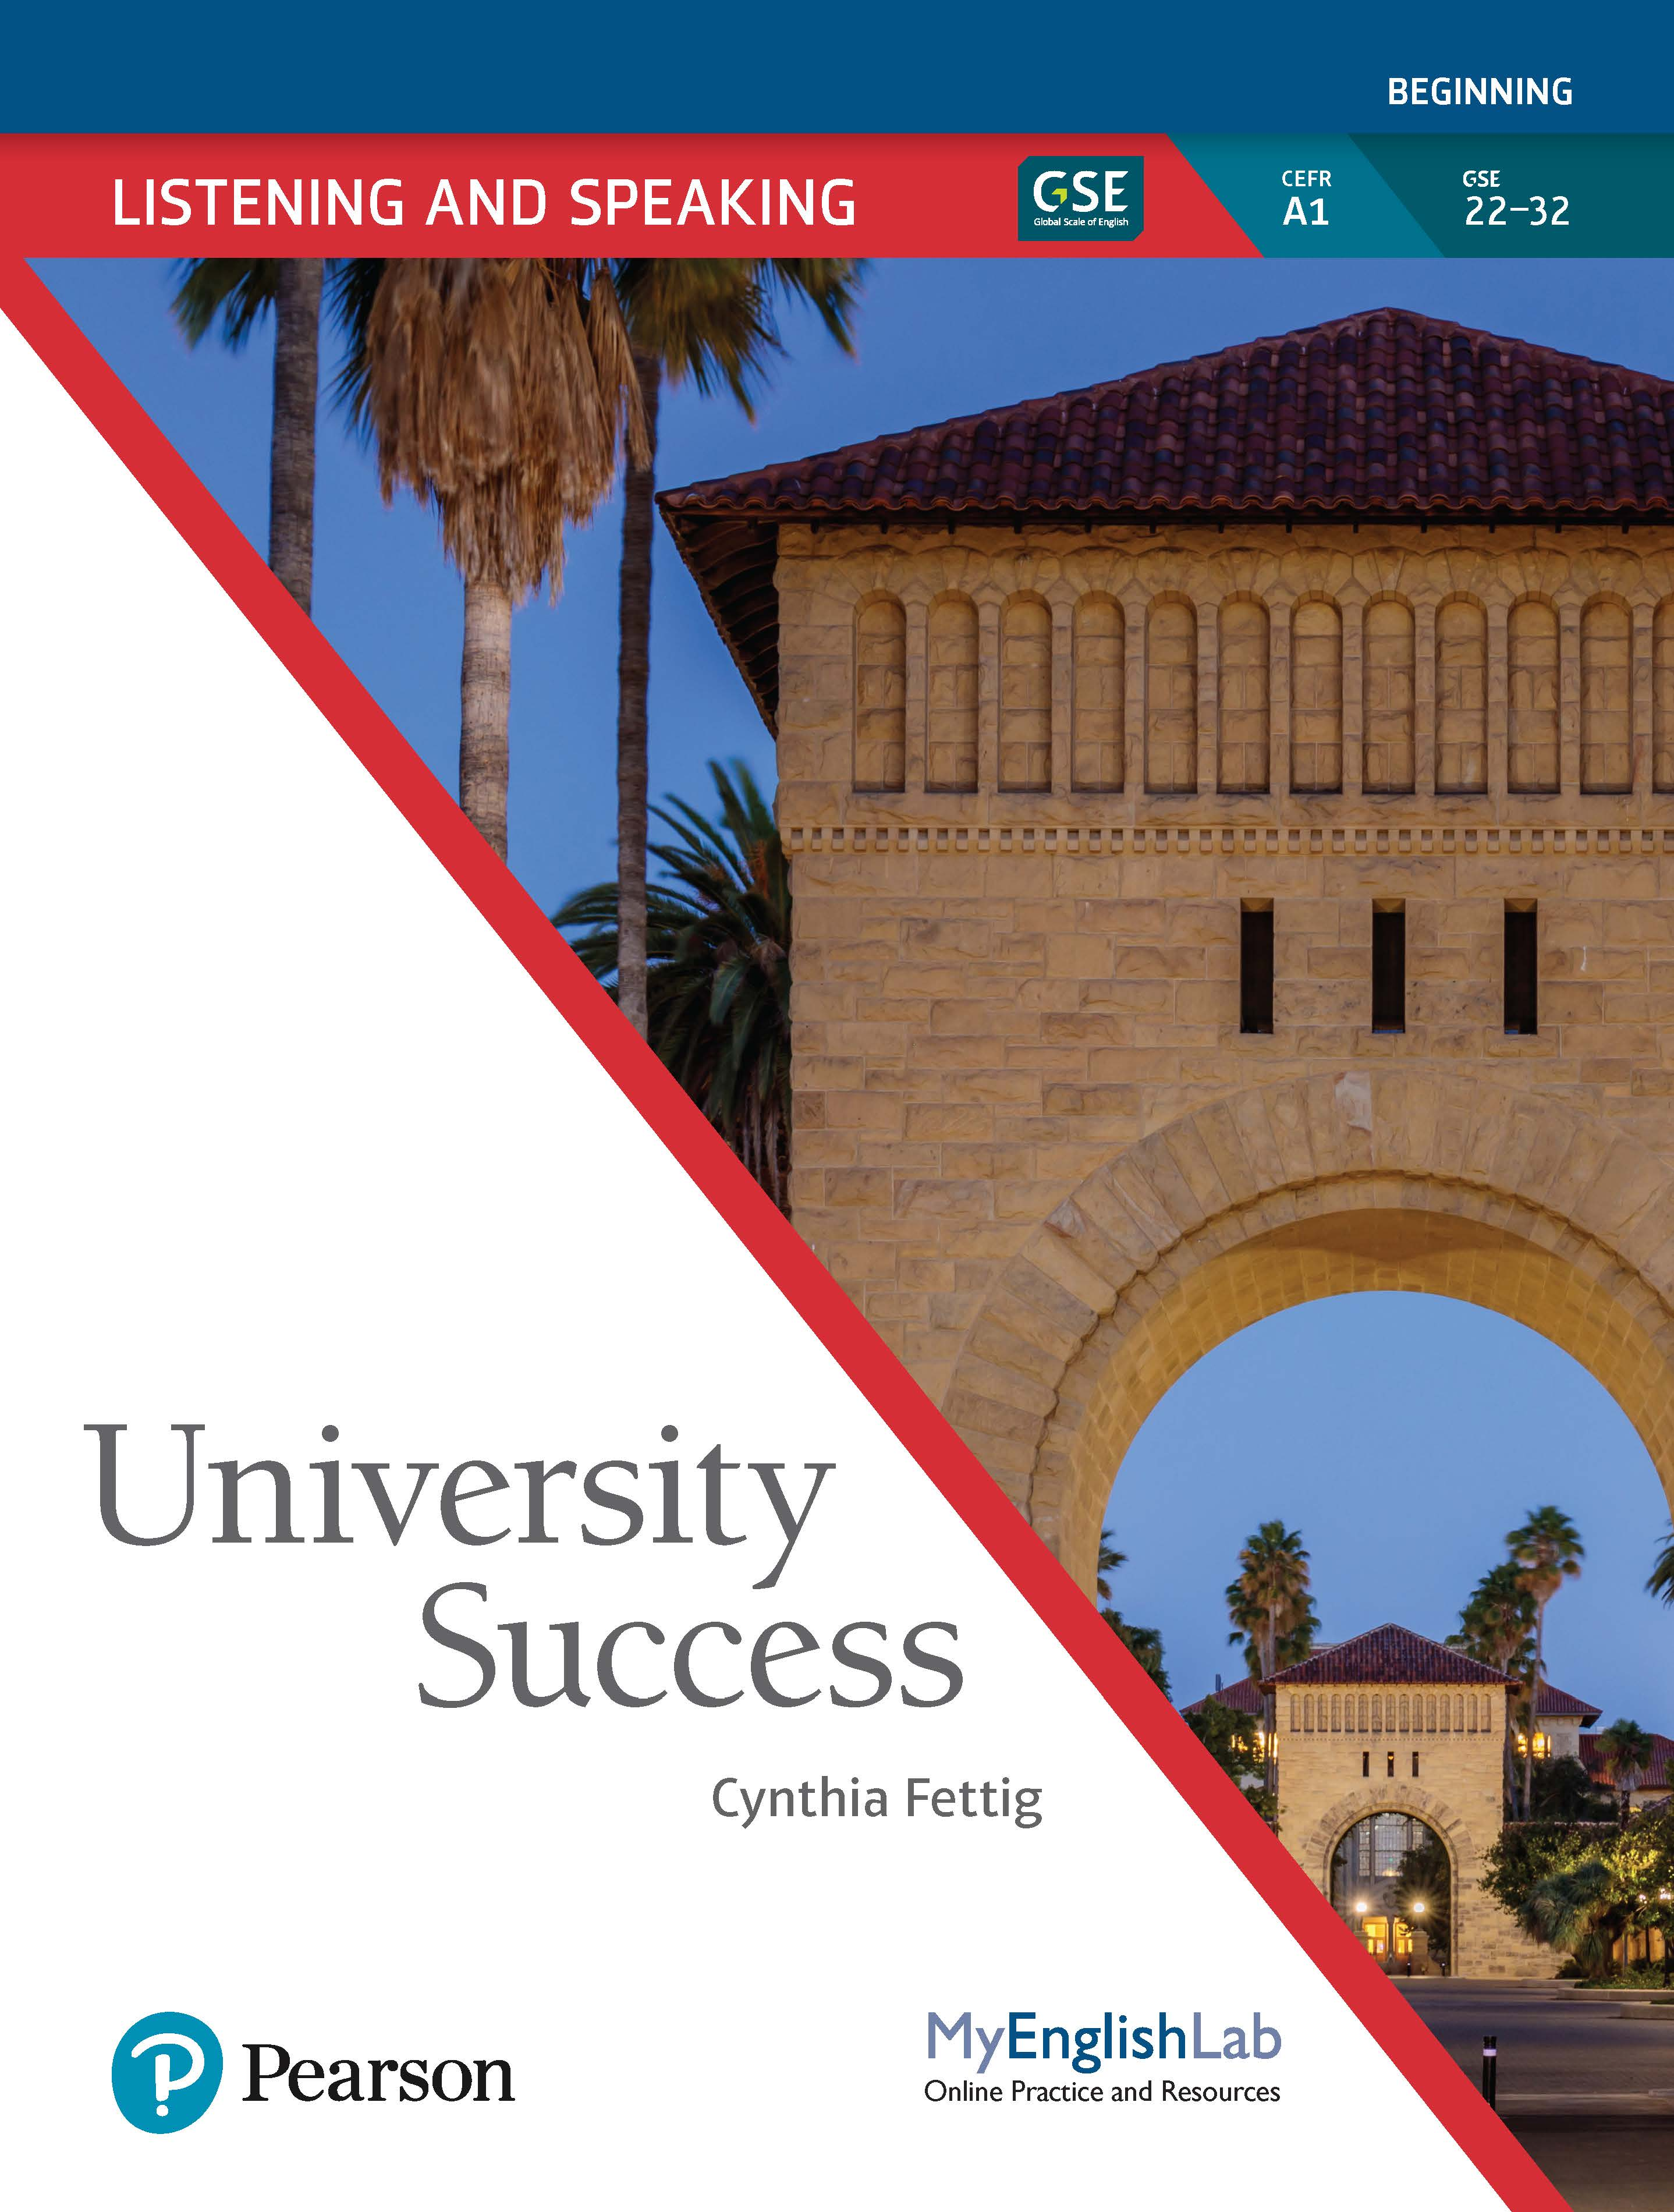 University Success cover image